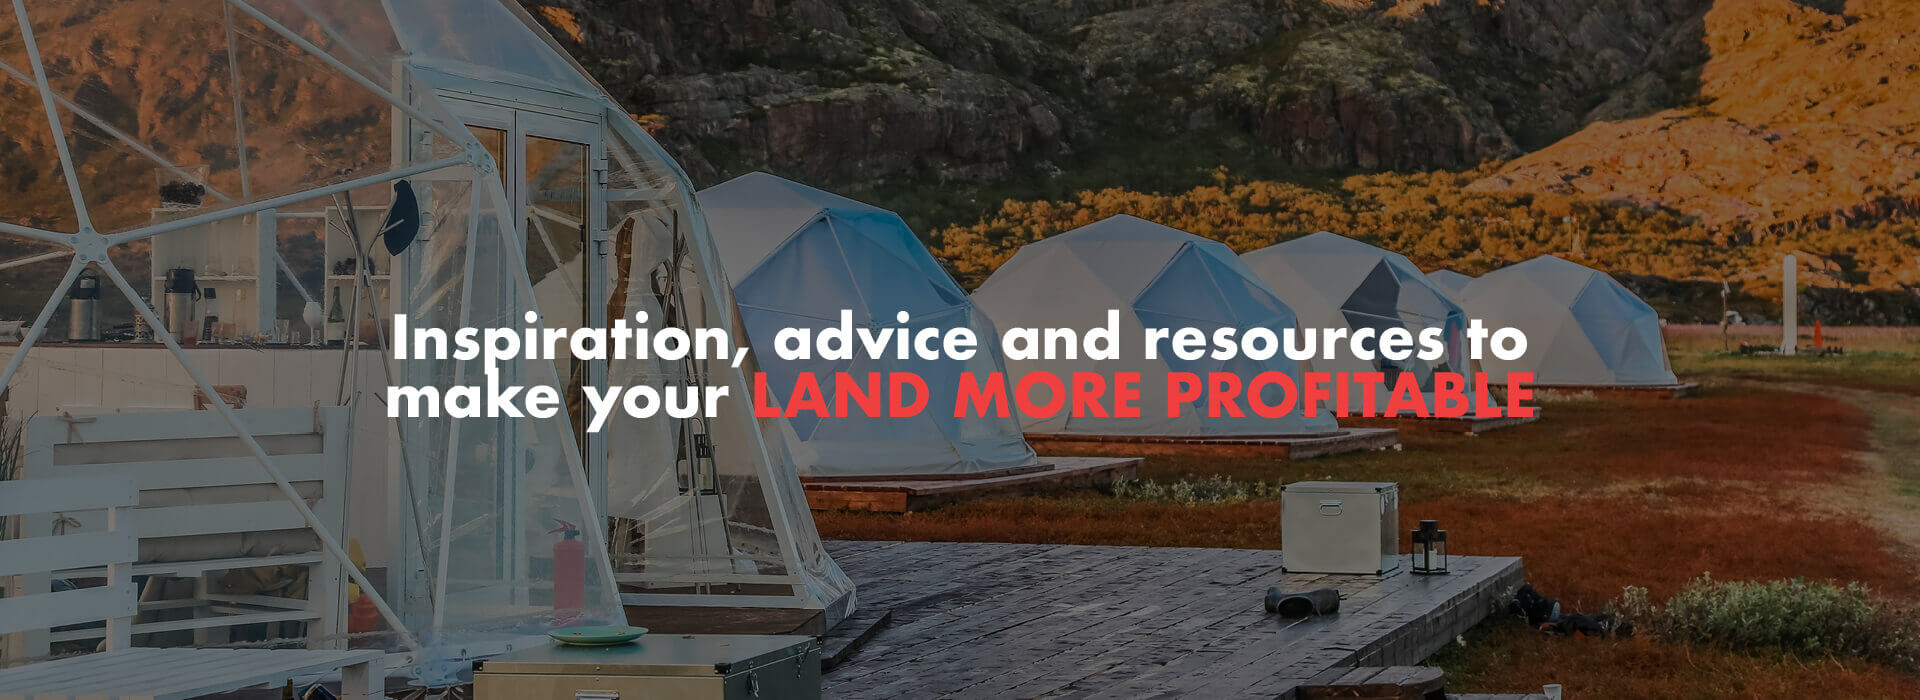 At the Farm Business Innovation Show you will find insipiration, advice and resources to make your land more profitable.